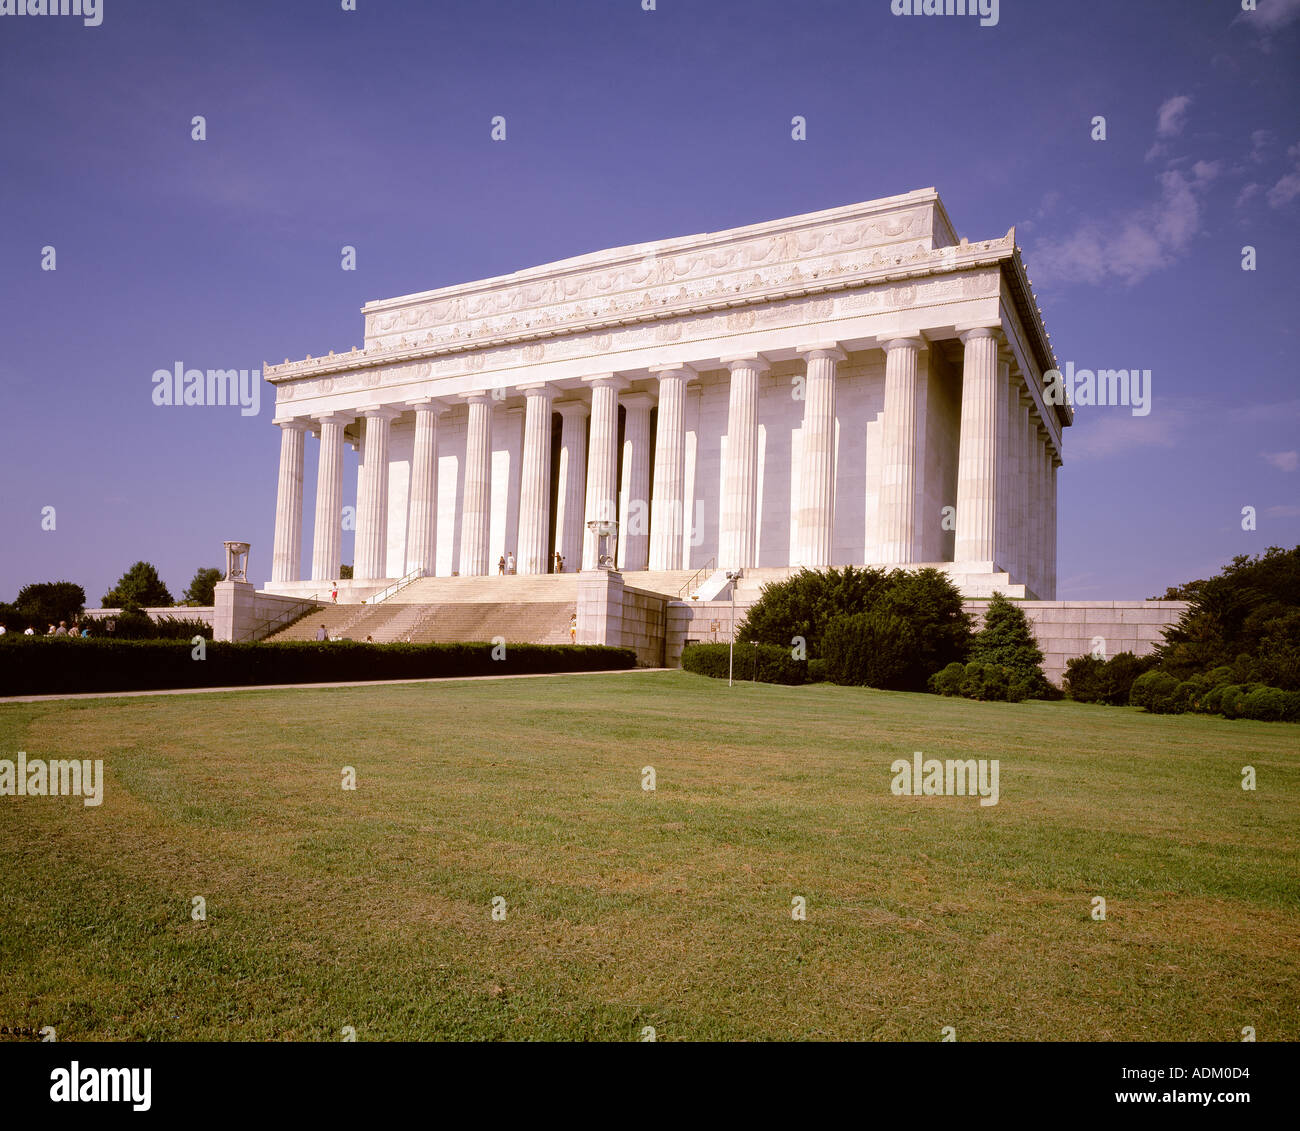 Building in the Ancient Greek Style - Stock Image